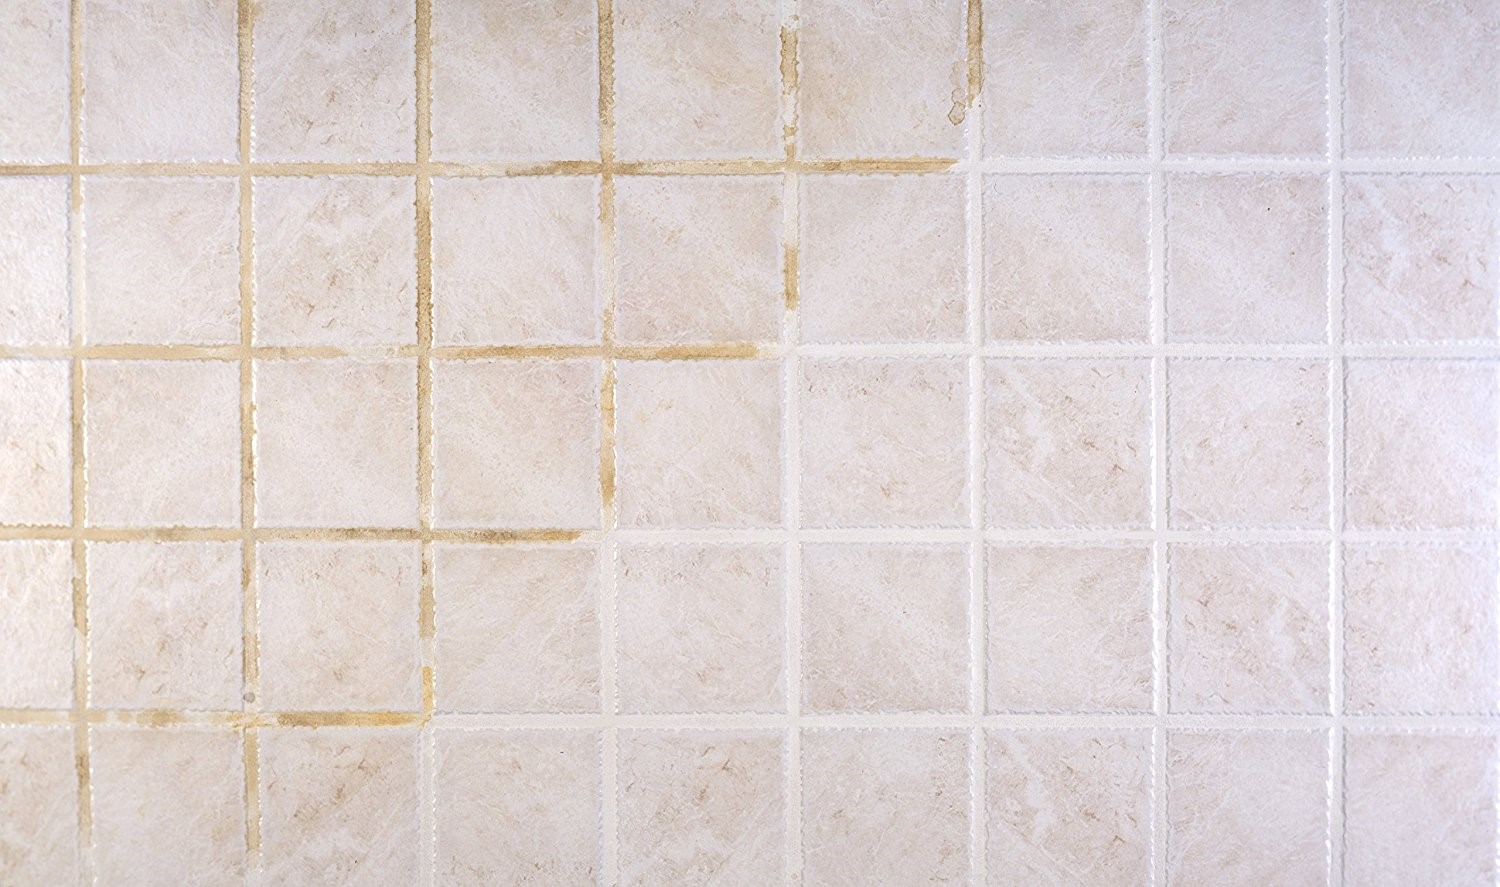 Getting Your Bathroom Clean Can Be A Tough Job, But Cleaning The Grout Can  Be Even More Difficult! I Have Compiled A List Of The Best Products To Use  To Get ...